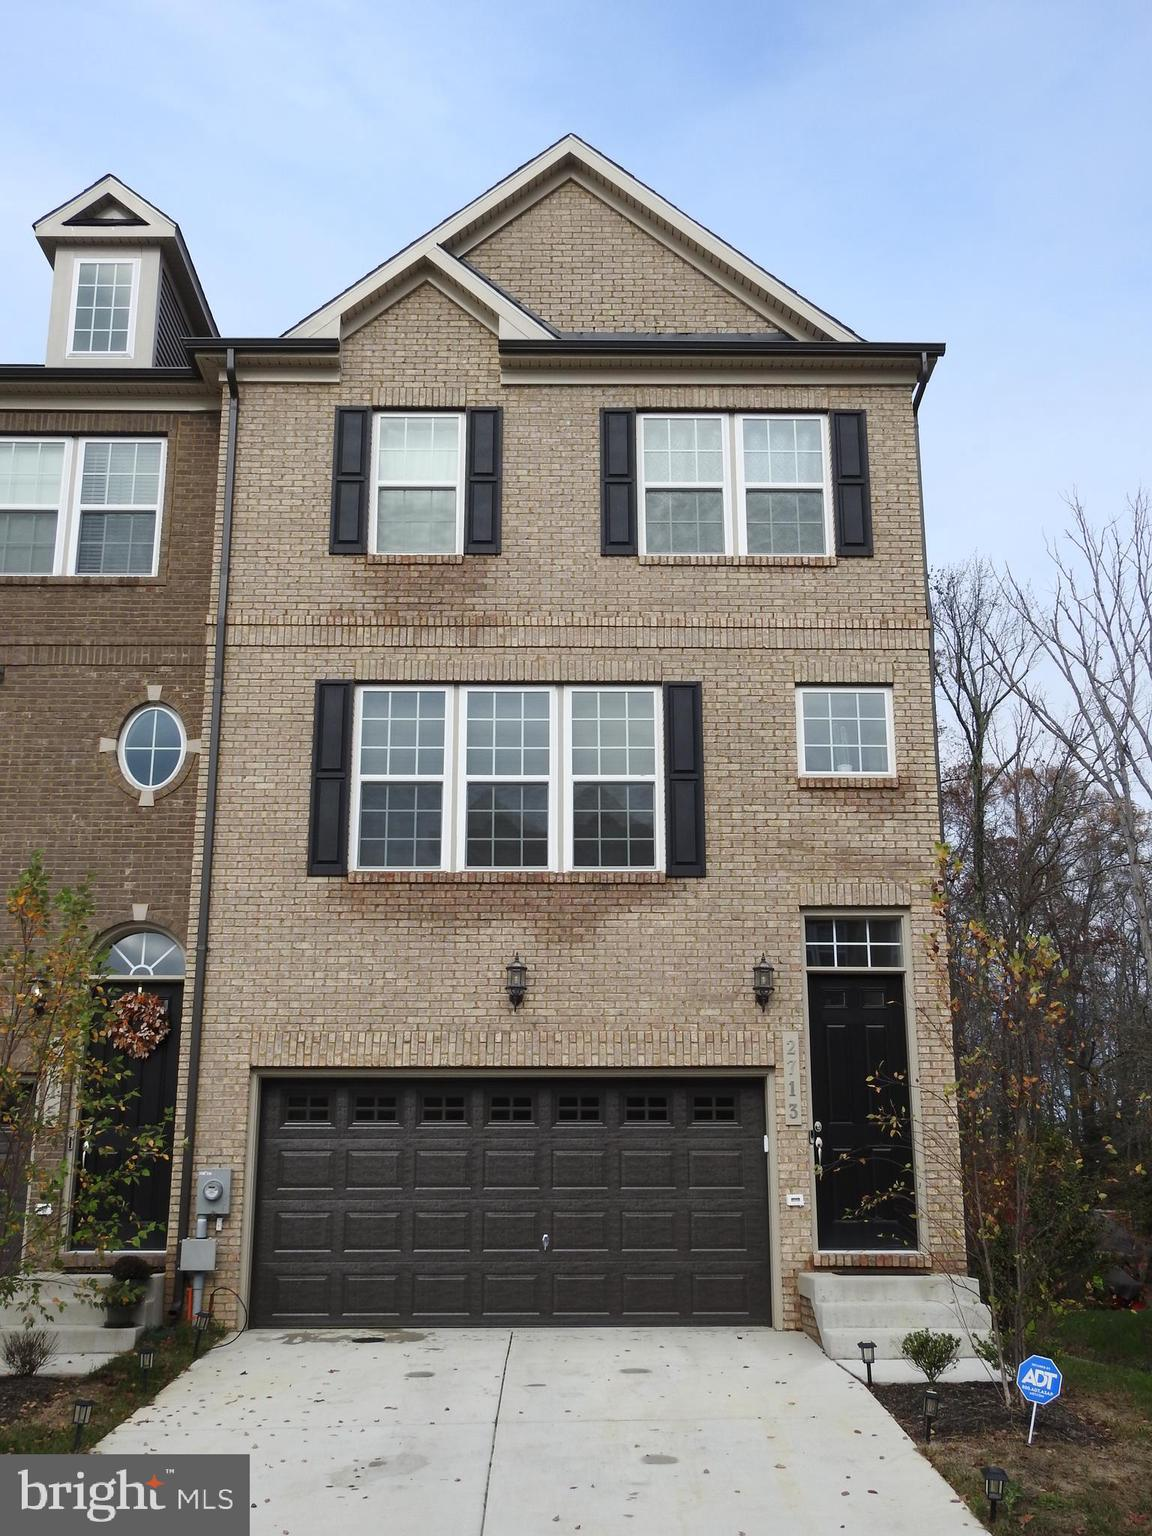 SHINES LIKE NEW! This multi-level Brick end Unit Townhome is a Rare find.  The 2-car front load gara